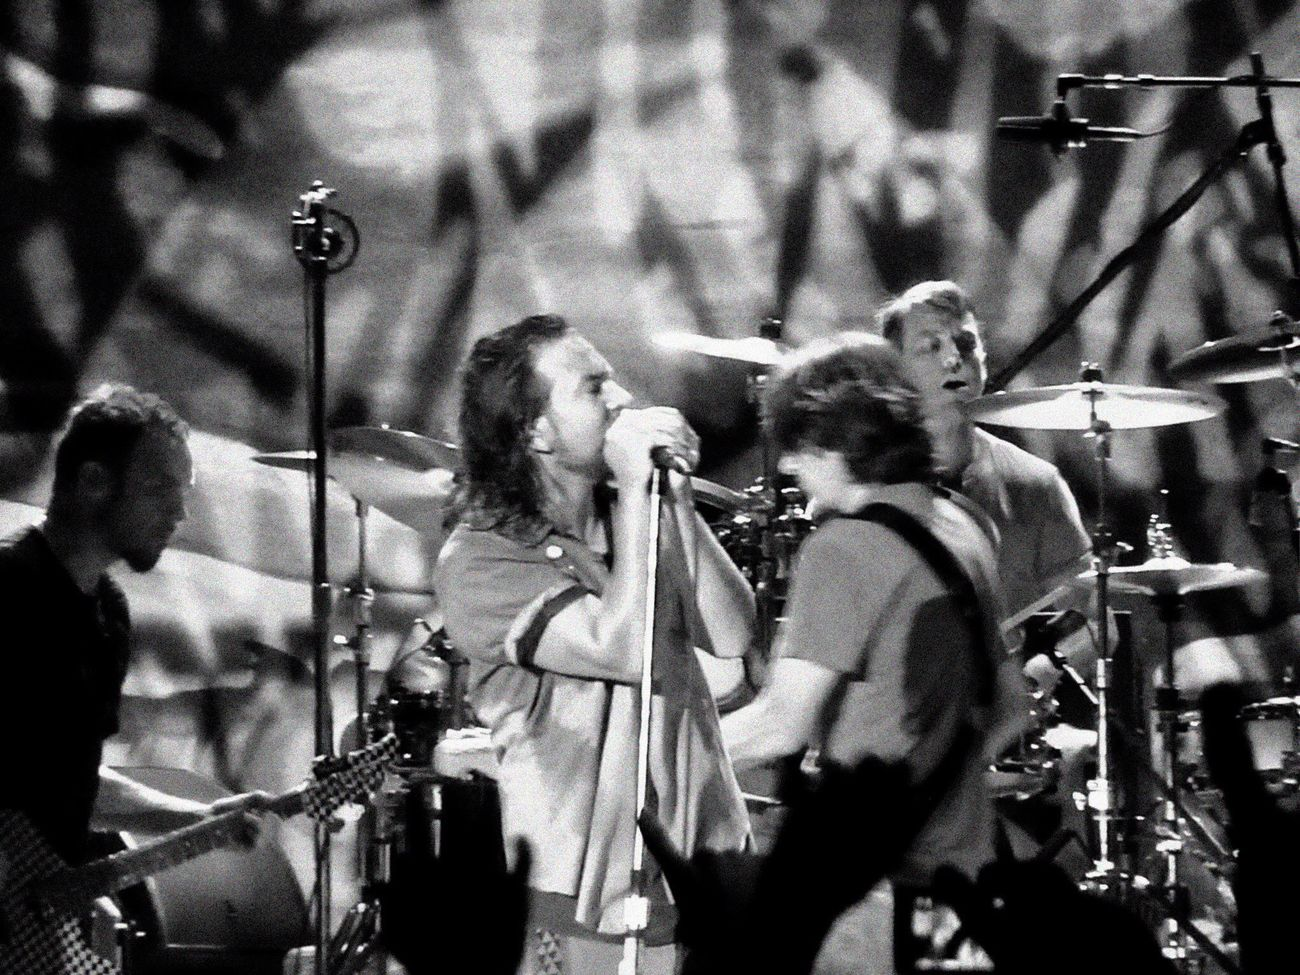 Music Brings Us Together Music Pearl Jam Grunge O2 London Rock Eddie Vedder Jeff Ament Stone Gossard Matt Cameron Blackandwhite